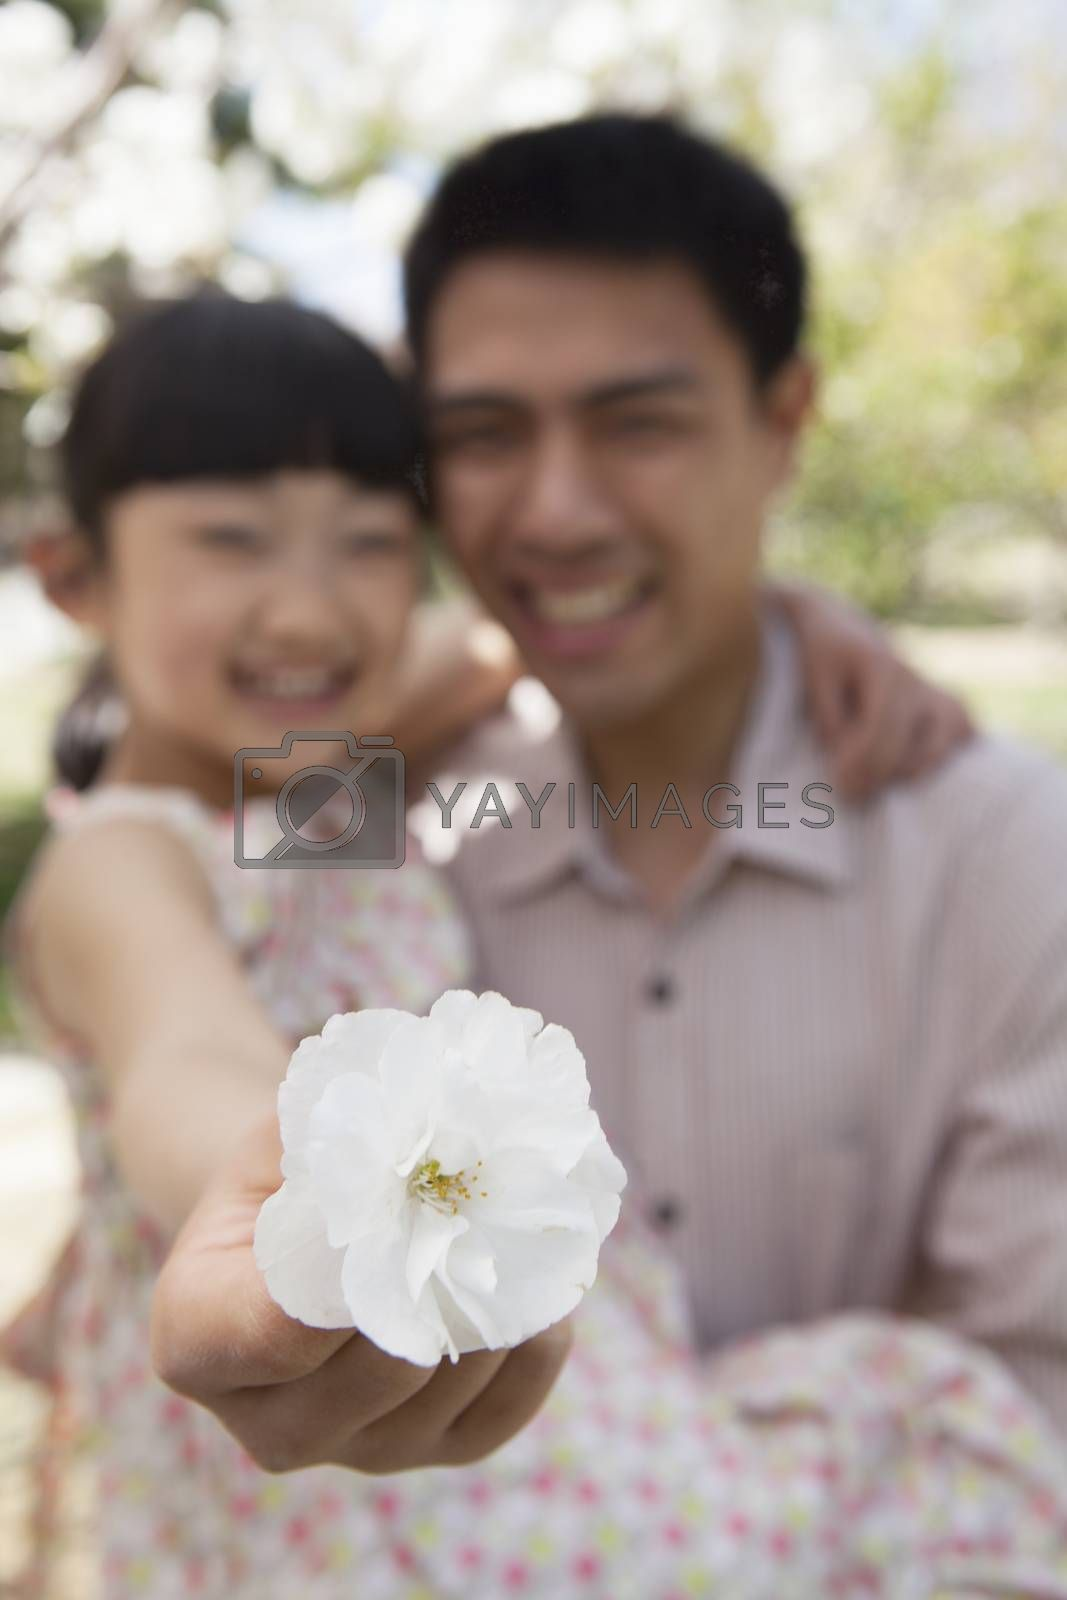 Daughter holding a cherry blossom close to the camera with her father in the park in springtime